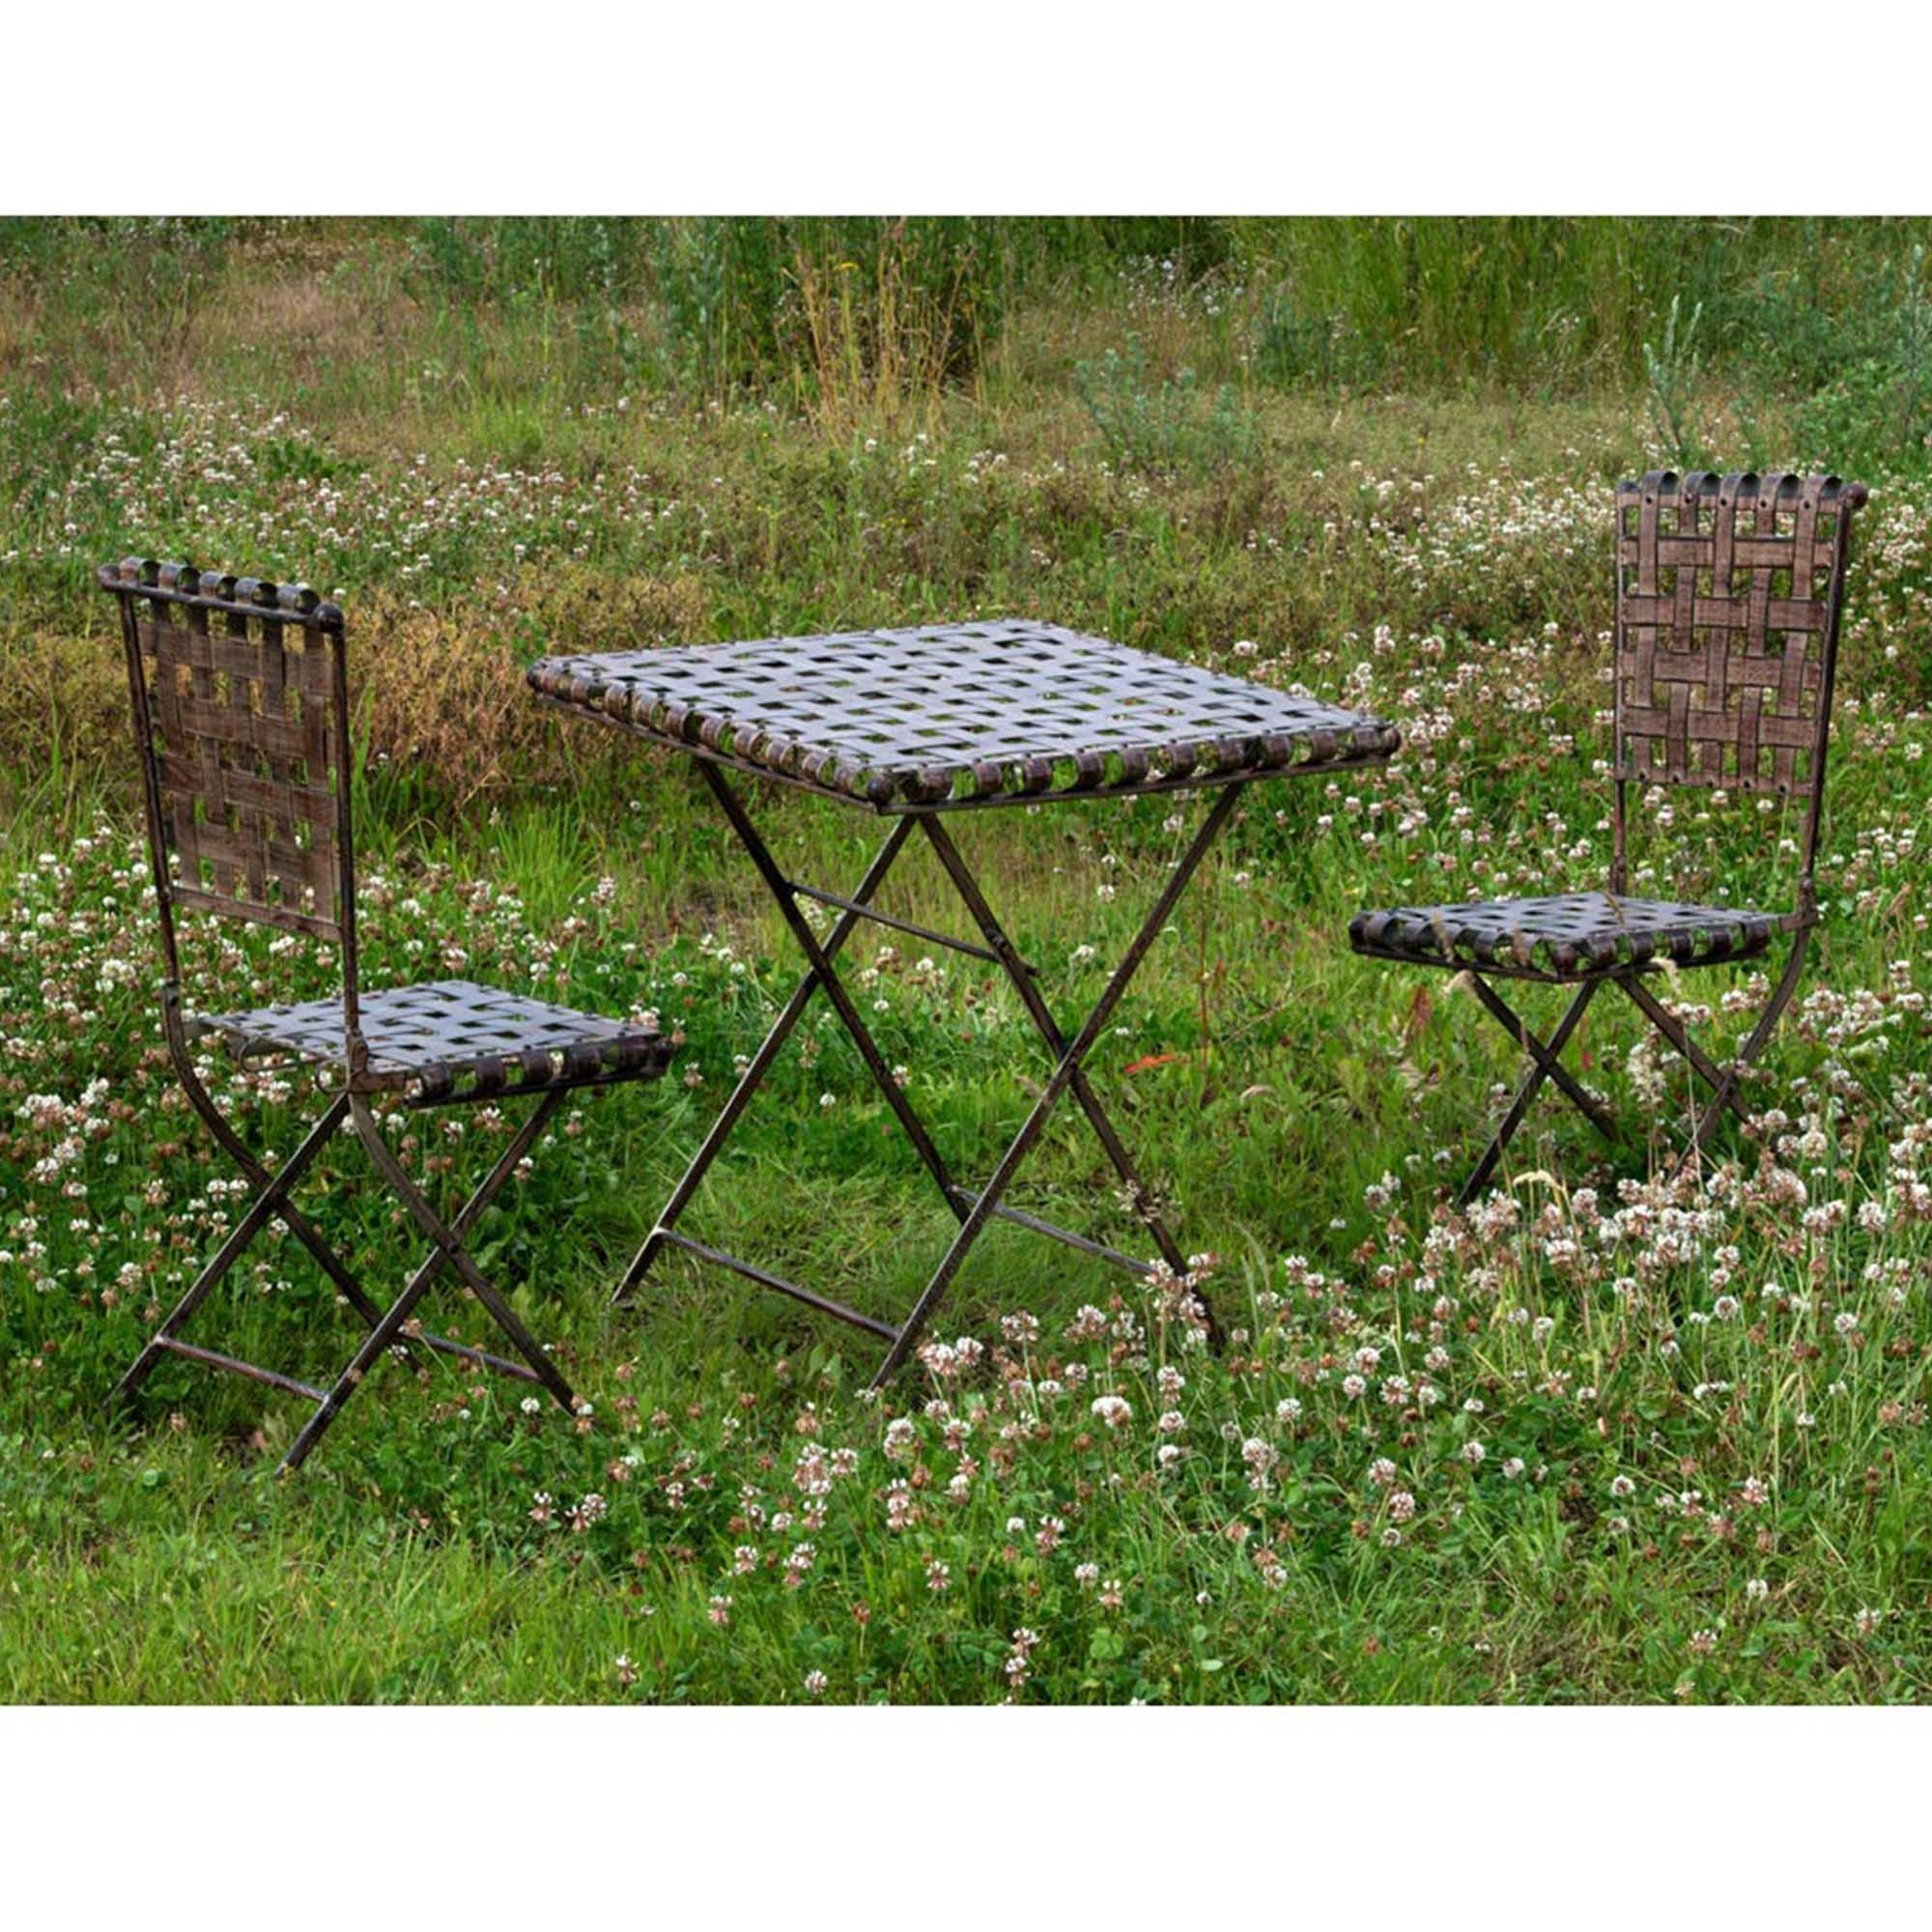 Outdoor Table And Chair Set Garden Table Chairs Set